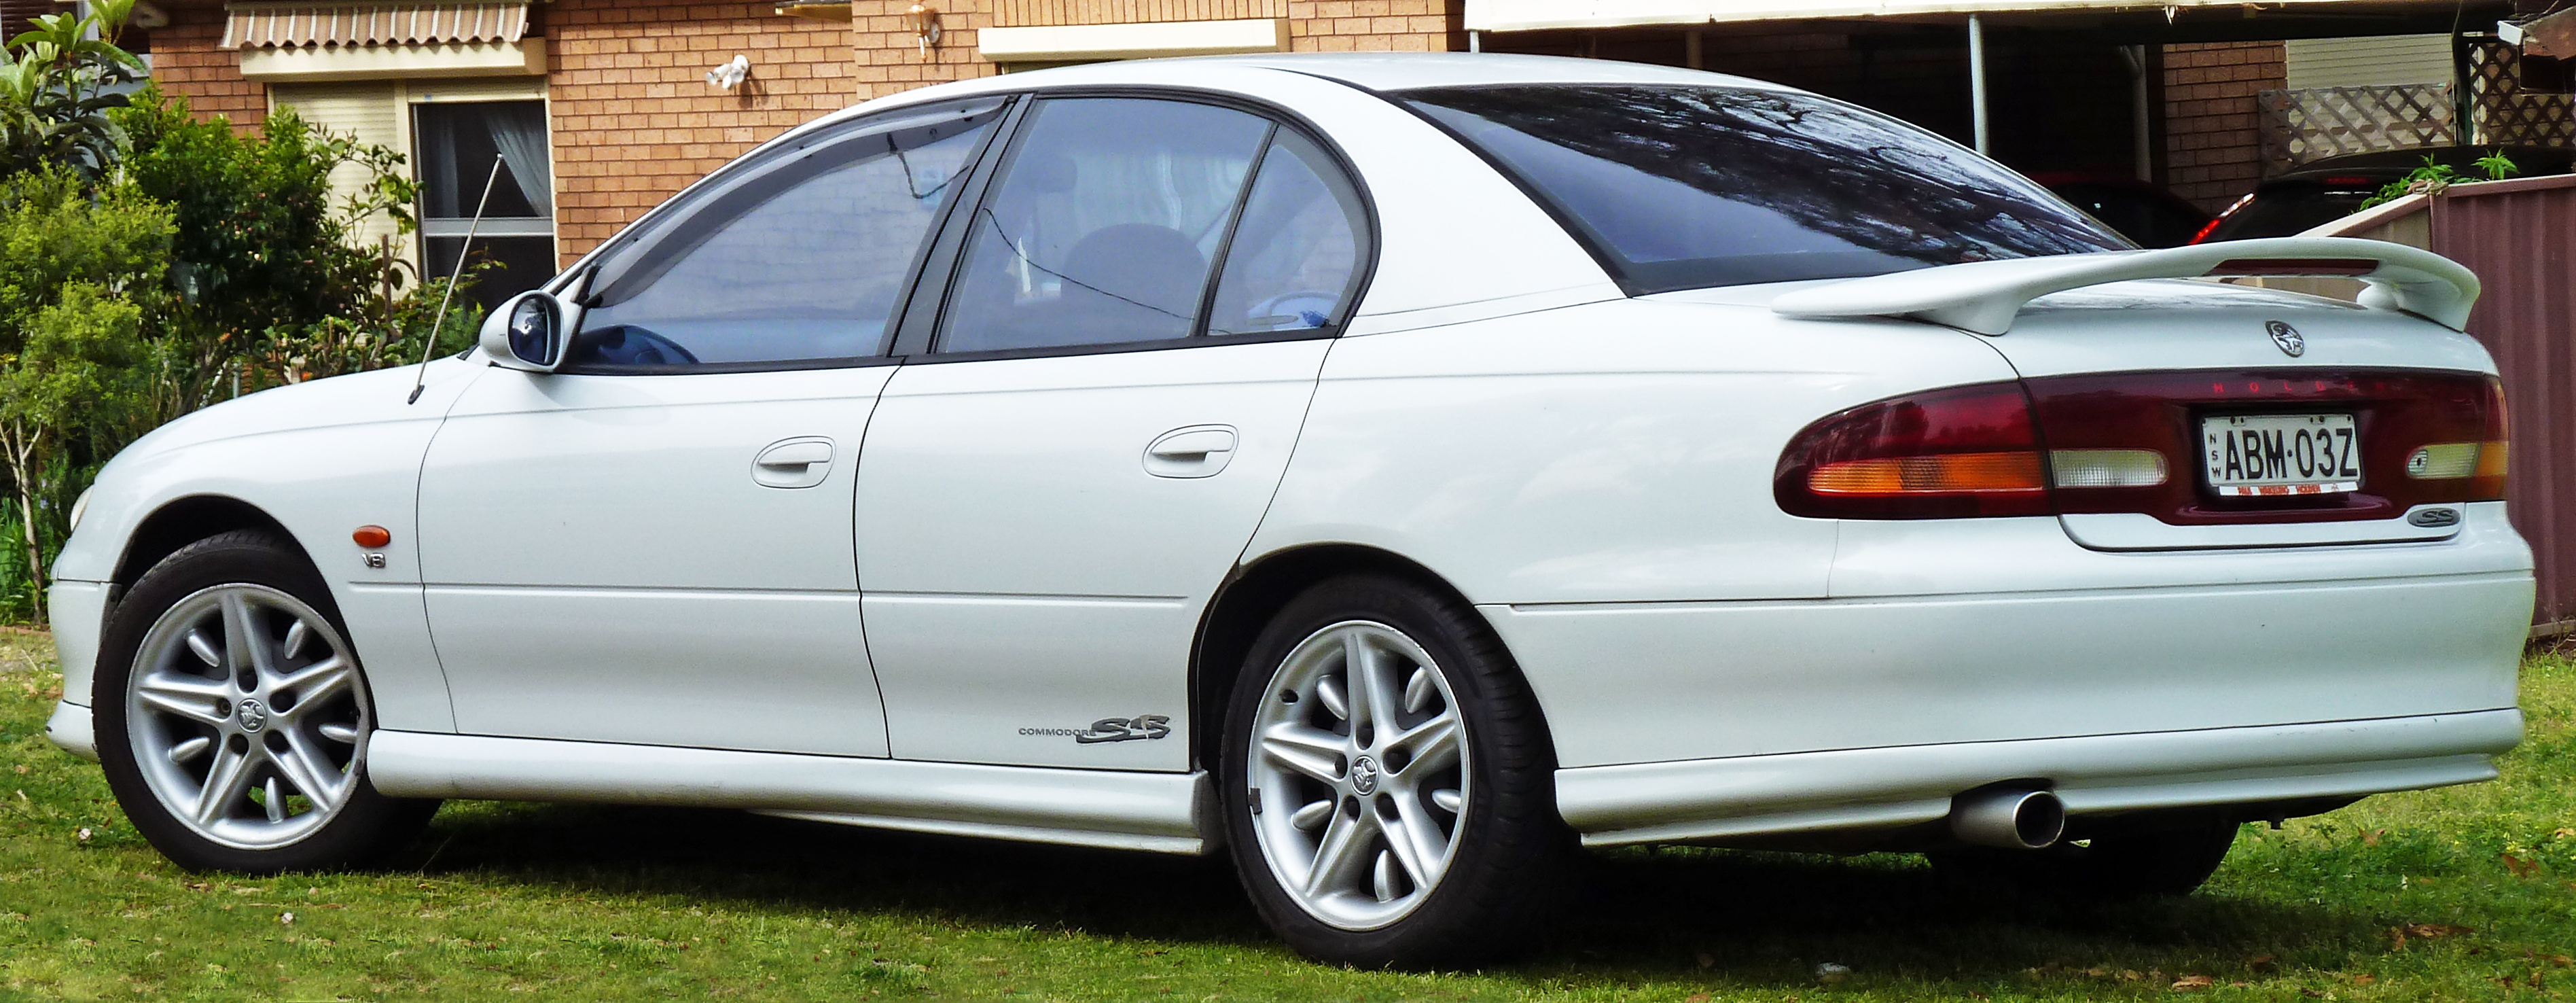 holden commodore (vt) 2010 images #4